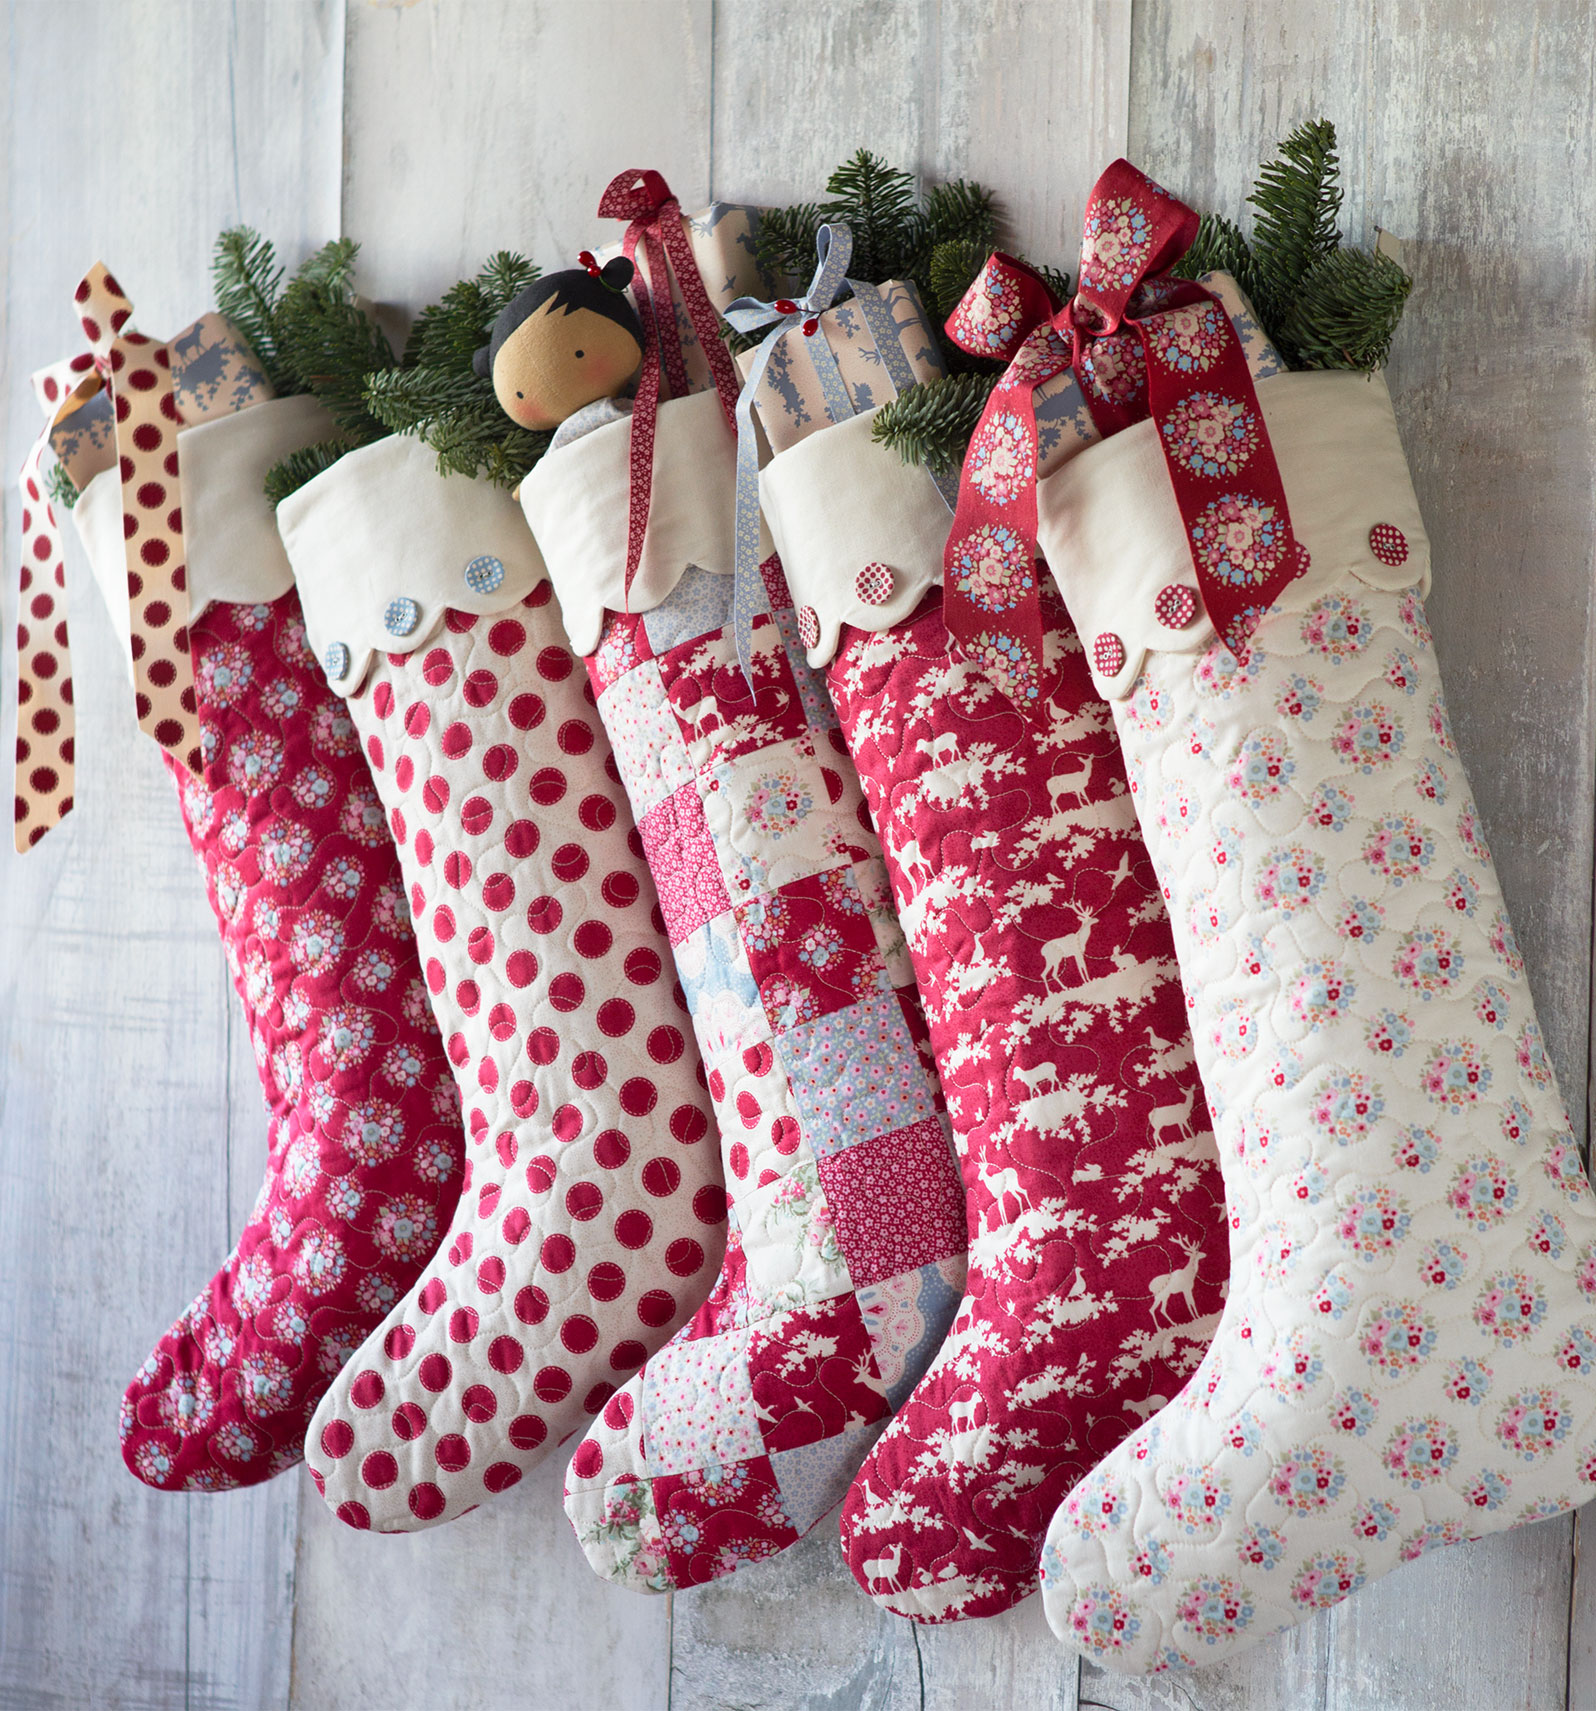 Cosy Christmas Stockings | Tildas World : pattern for quilted christmas stocking - Adamdwight.com